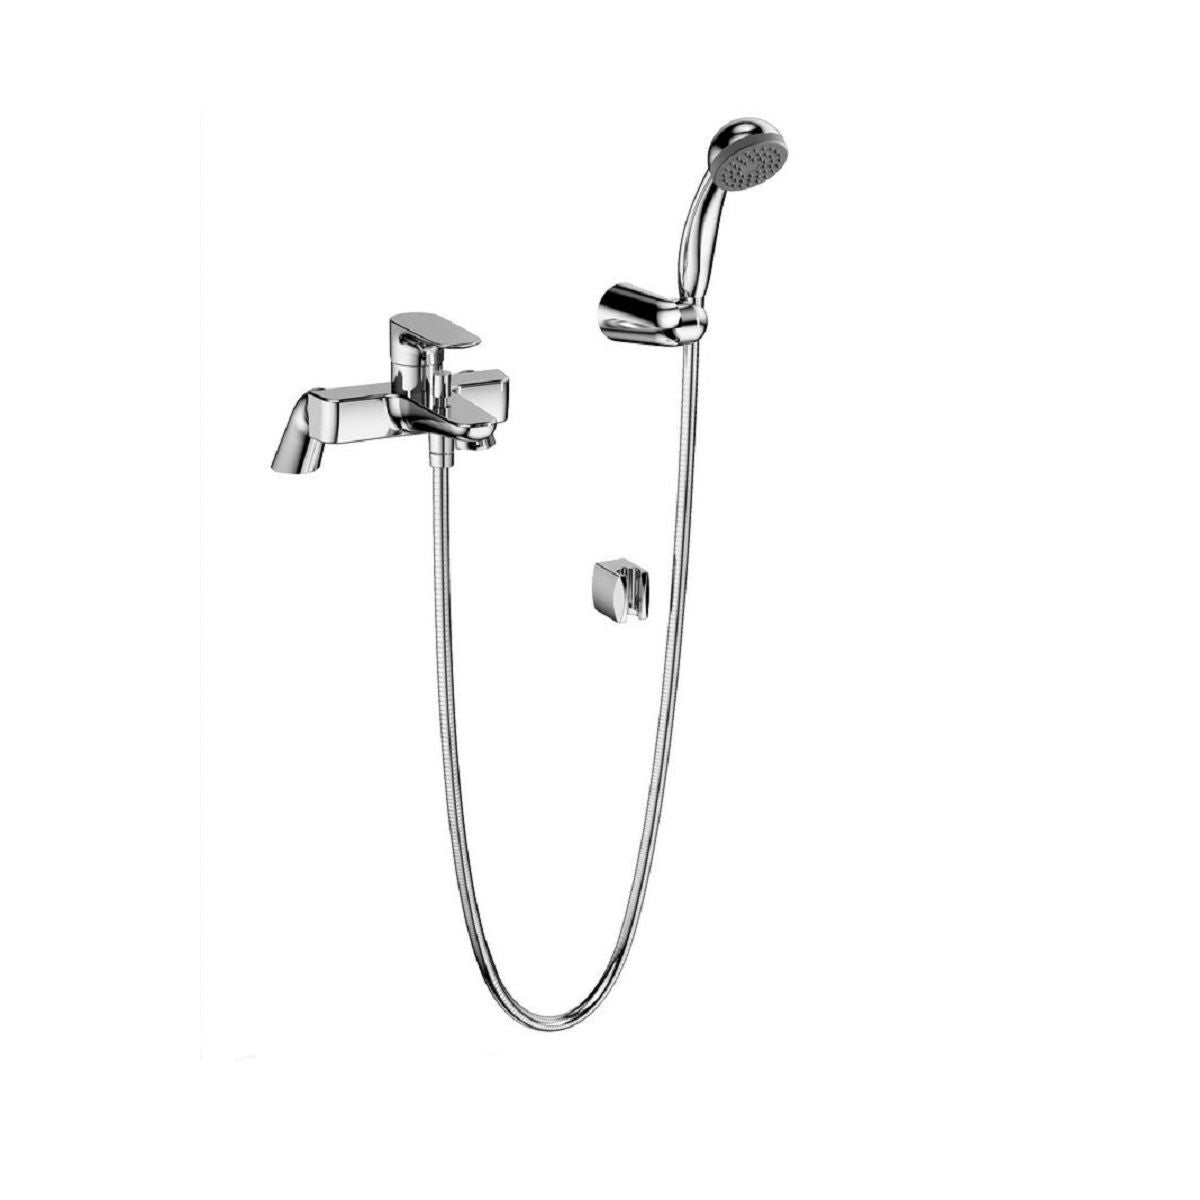 X-Line Bath Shower Mixer with Hose and Handset - Blue Sky Bathrooms Ltd